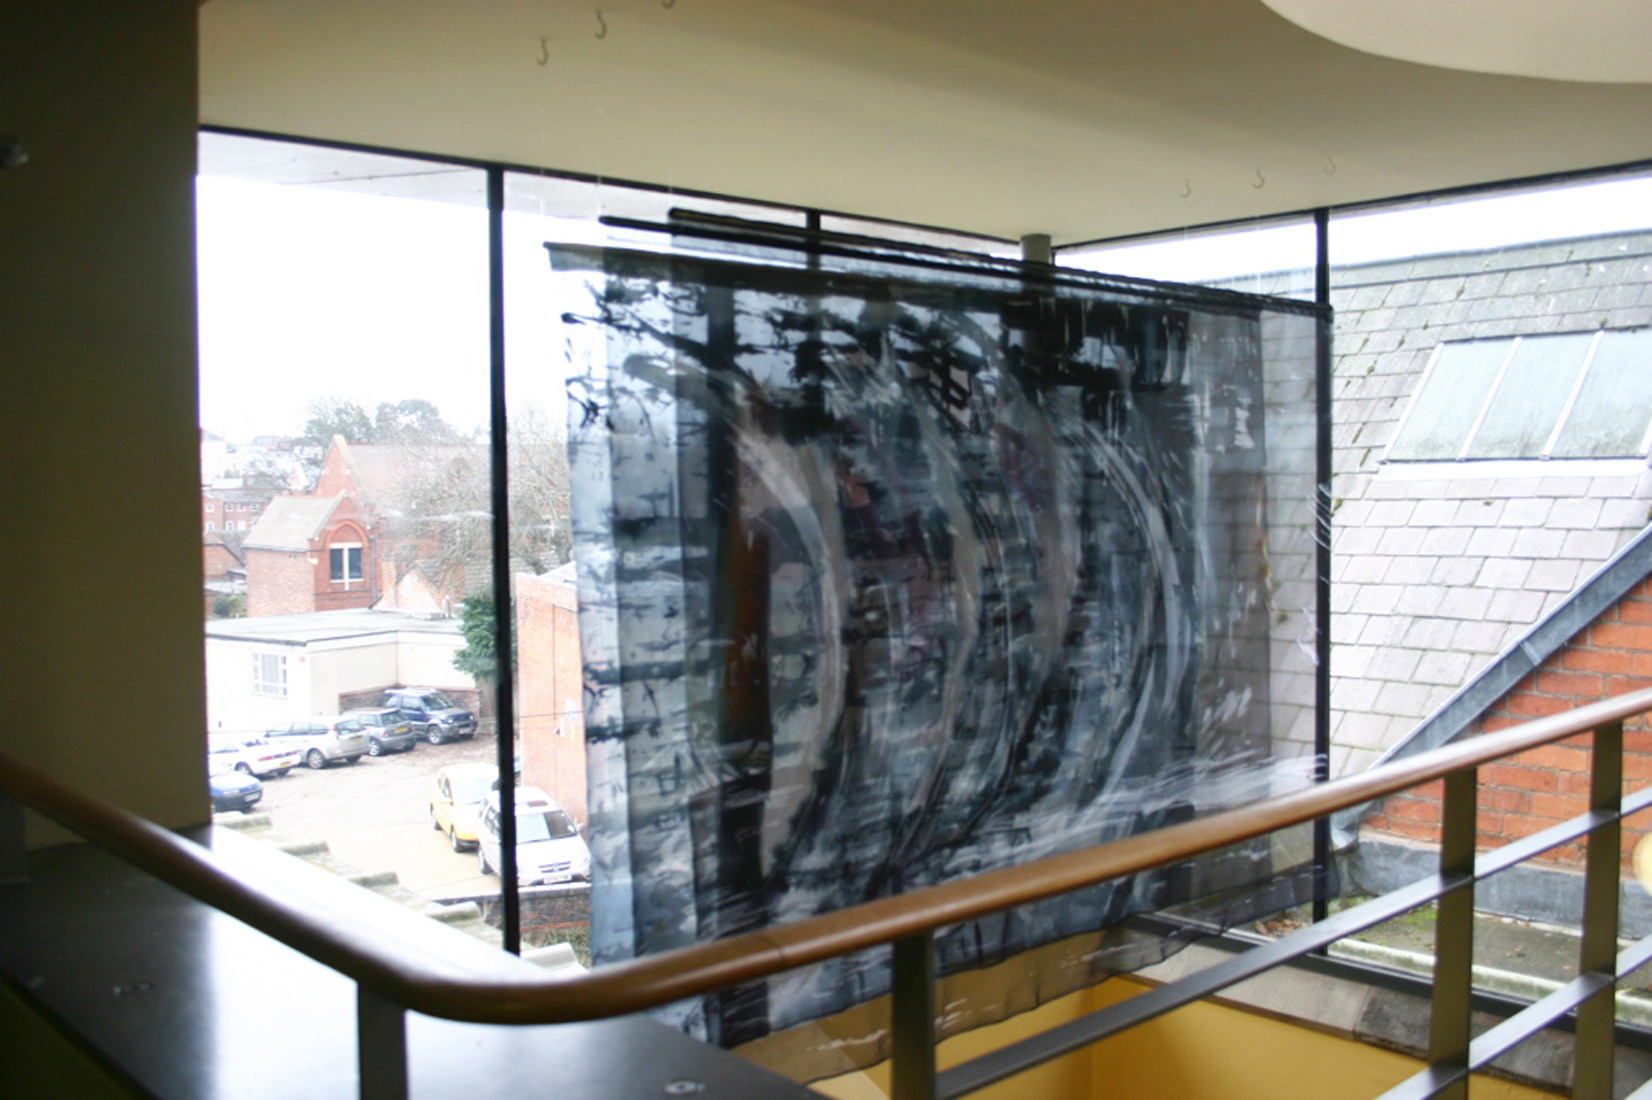 painted textile artwork commission for kings school Worcester titled soundwave by carole waller